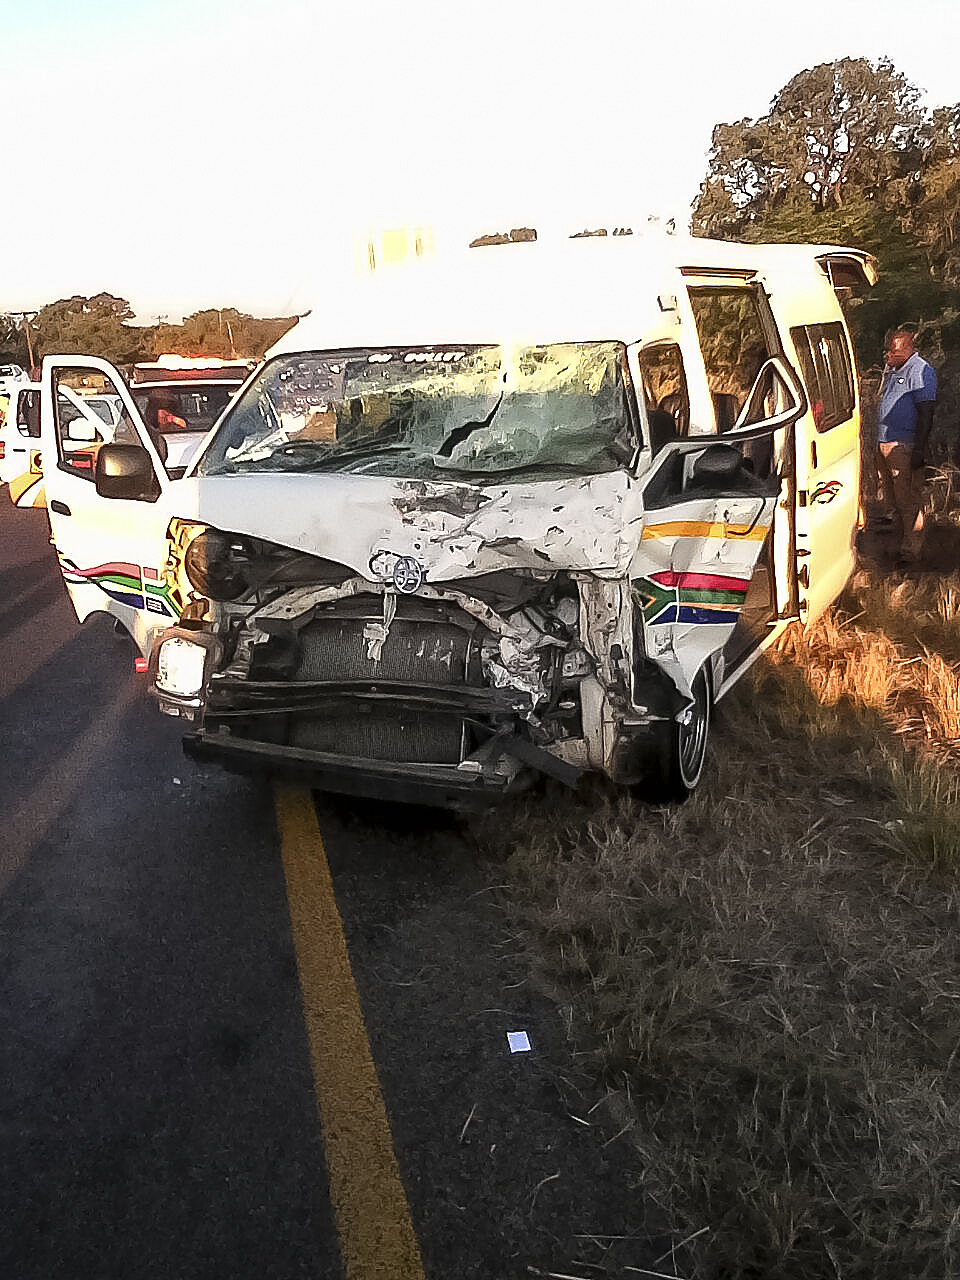 Kwa Mhlanga R573 crash leaves 10 injured